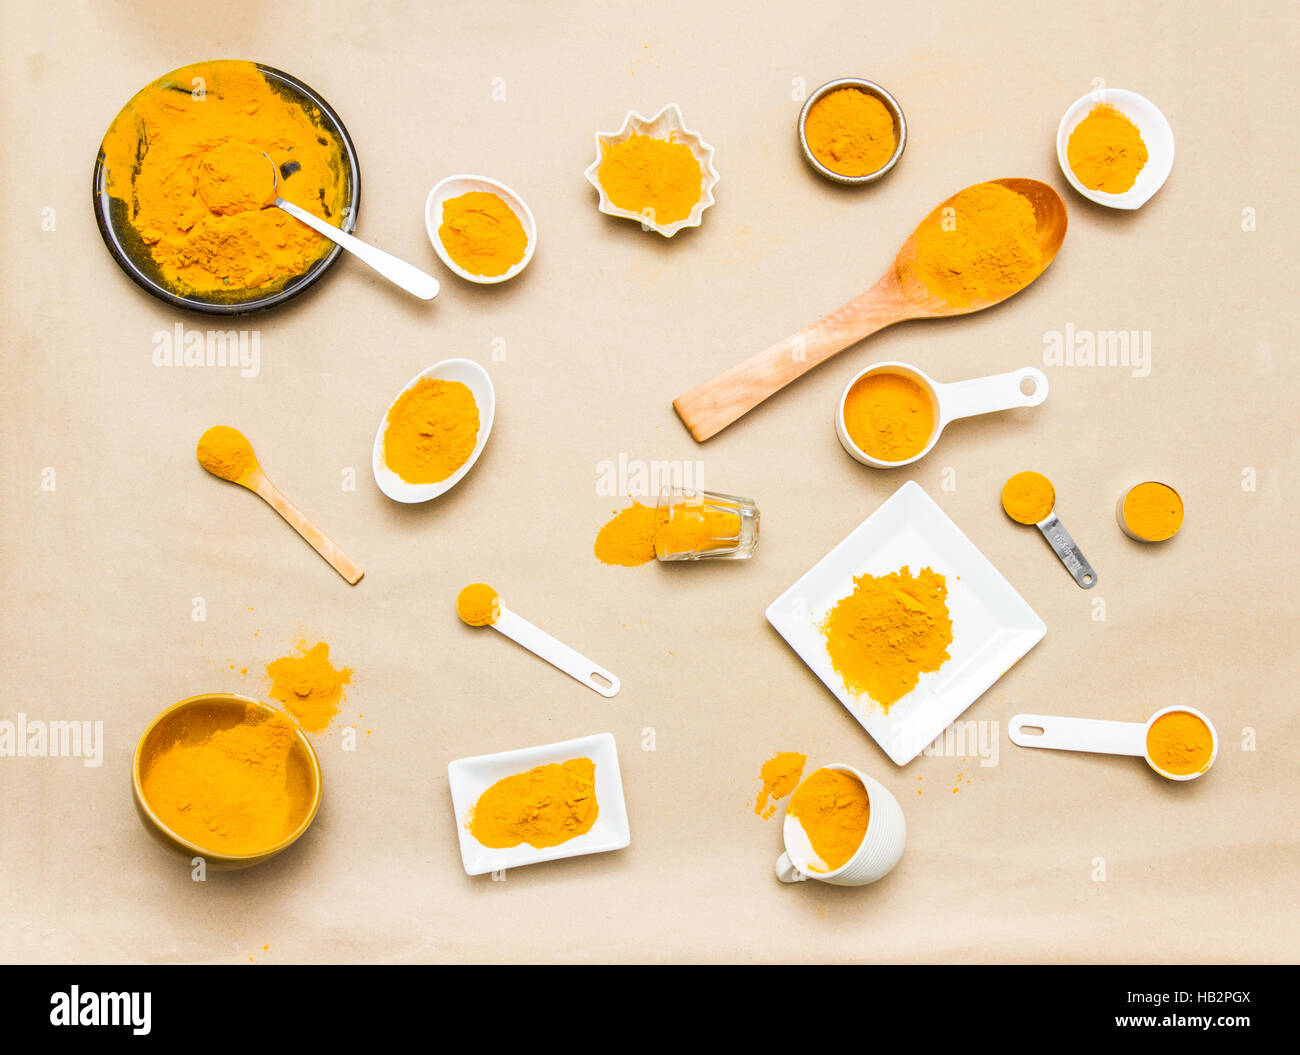 Turmeric spices. Stock Photo